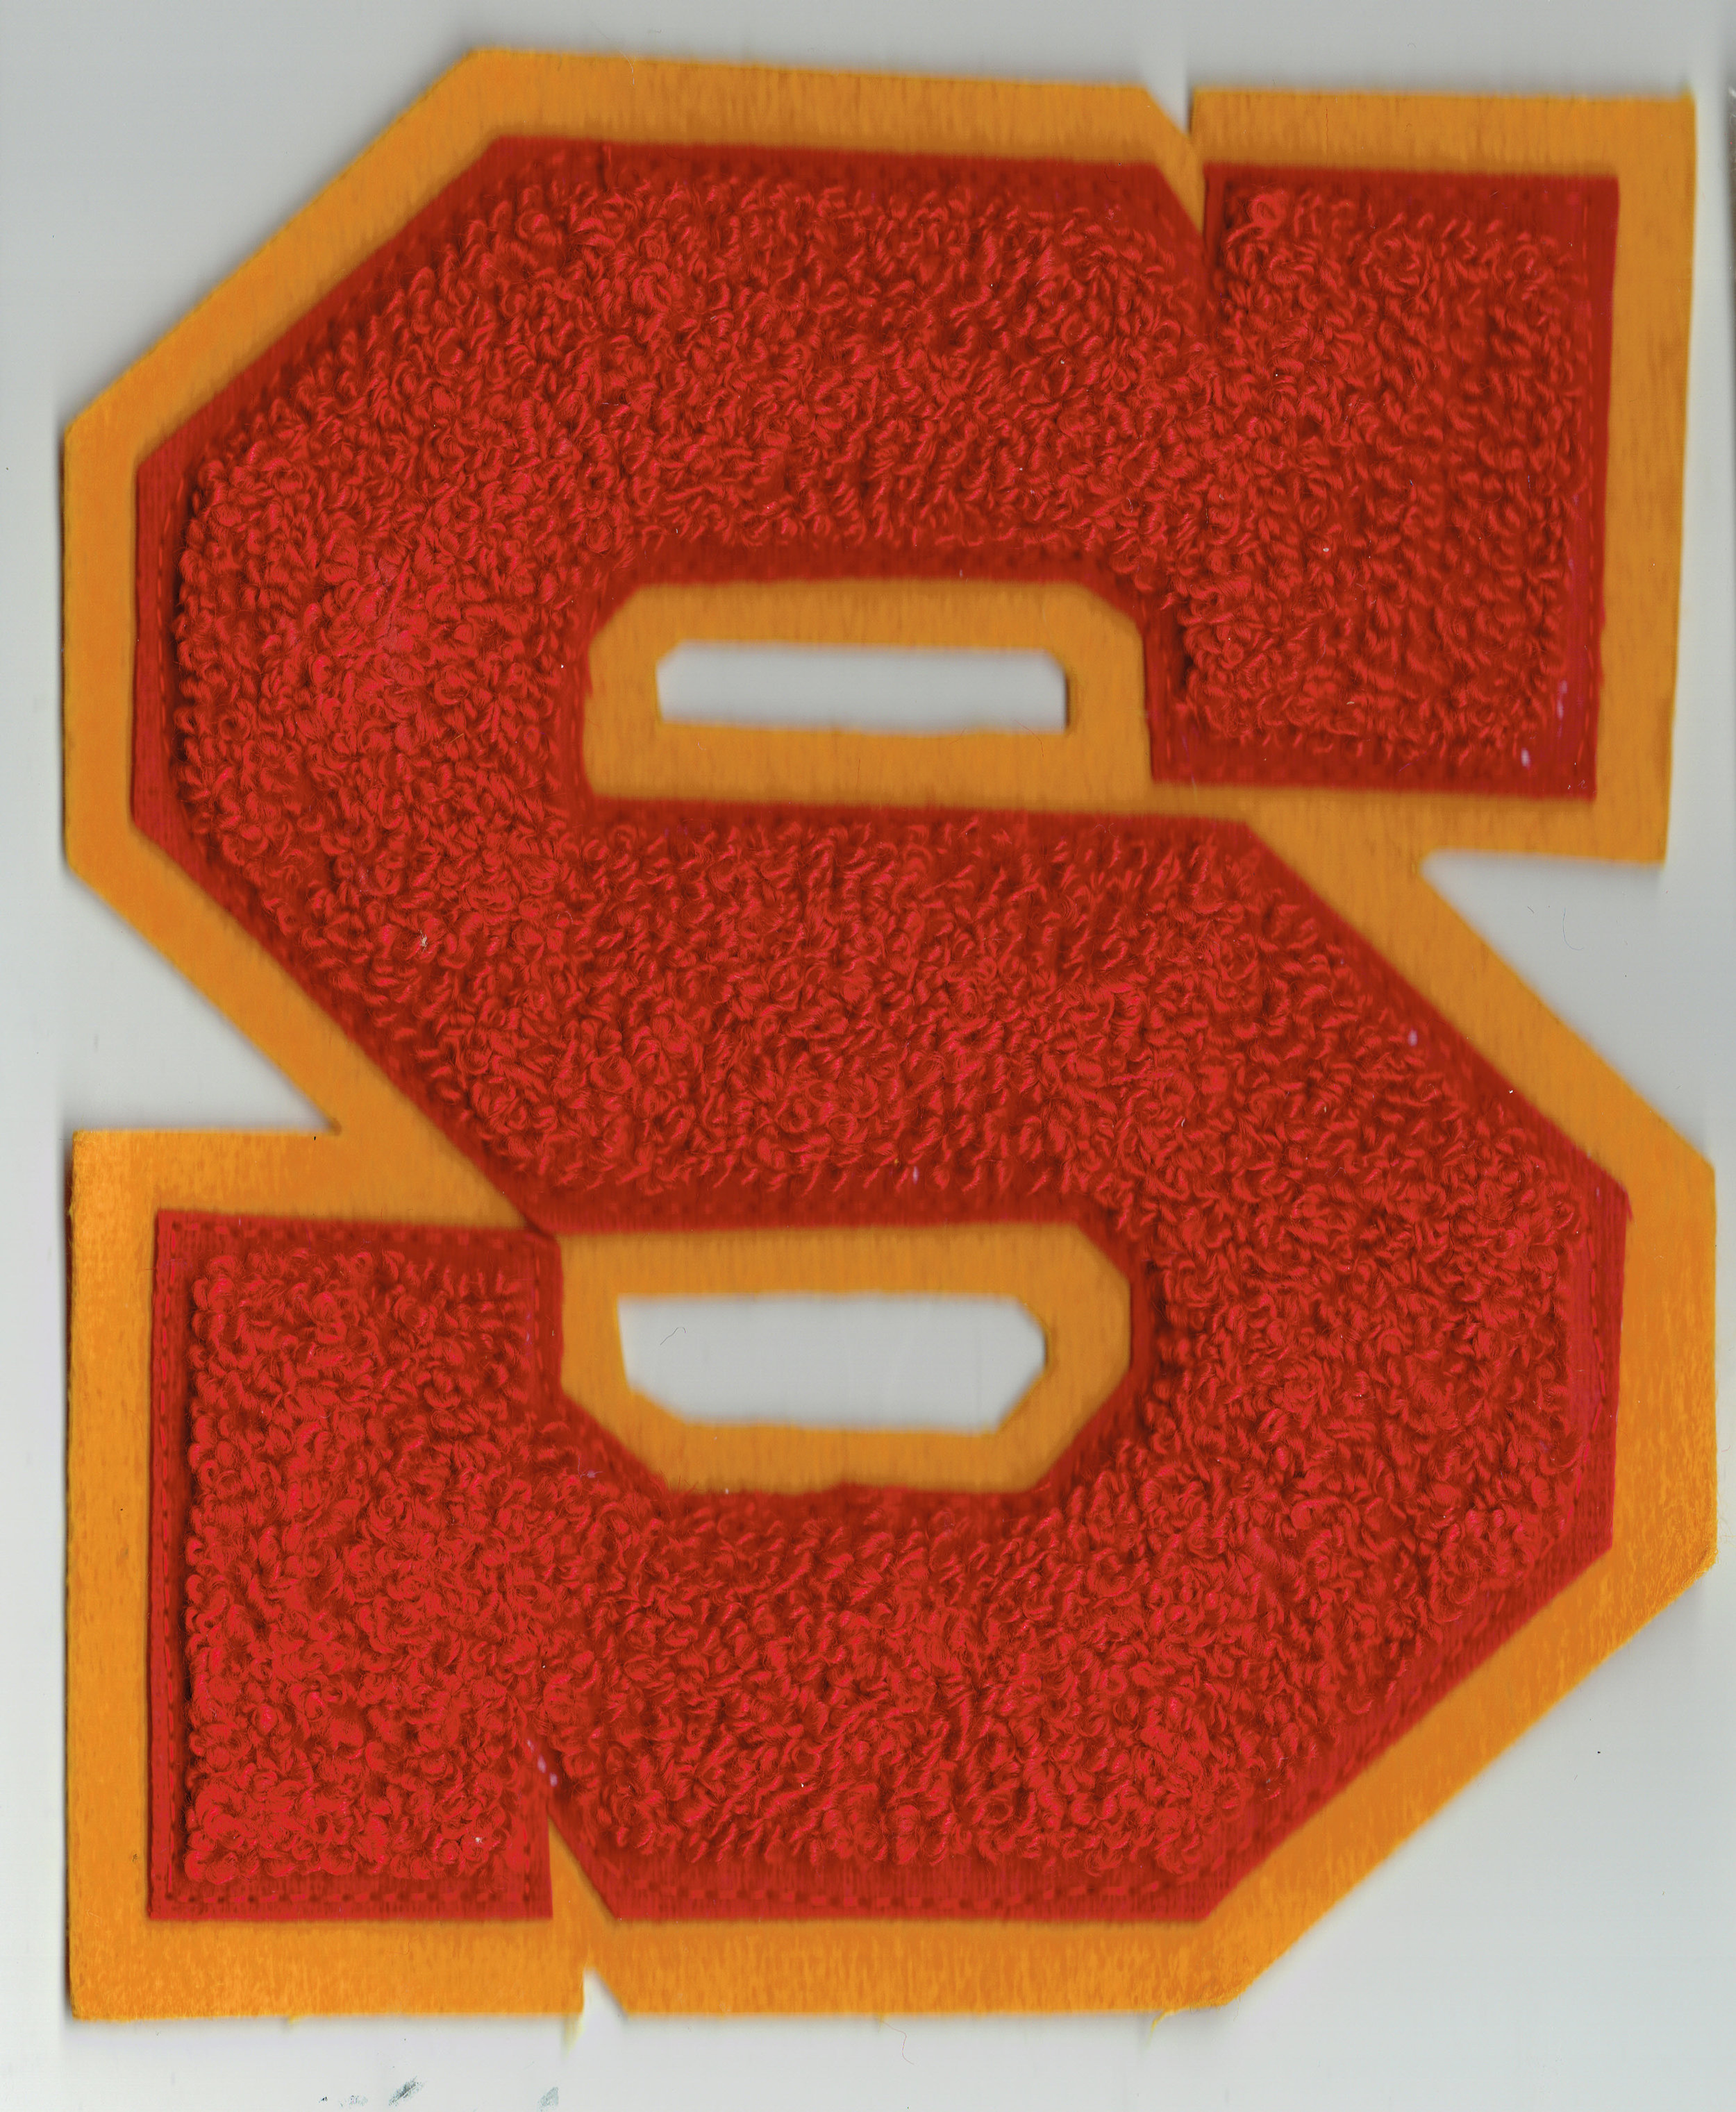 Pennant Shop - Chenille LetteringPlease call or write for price.Manufactured at the Pennant Shop(504) 837 8420Email: pennant700@yahoo.com